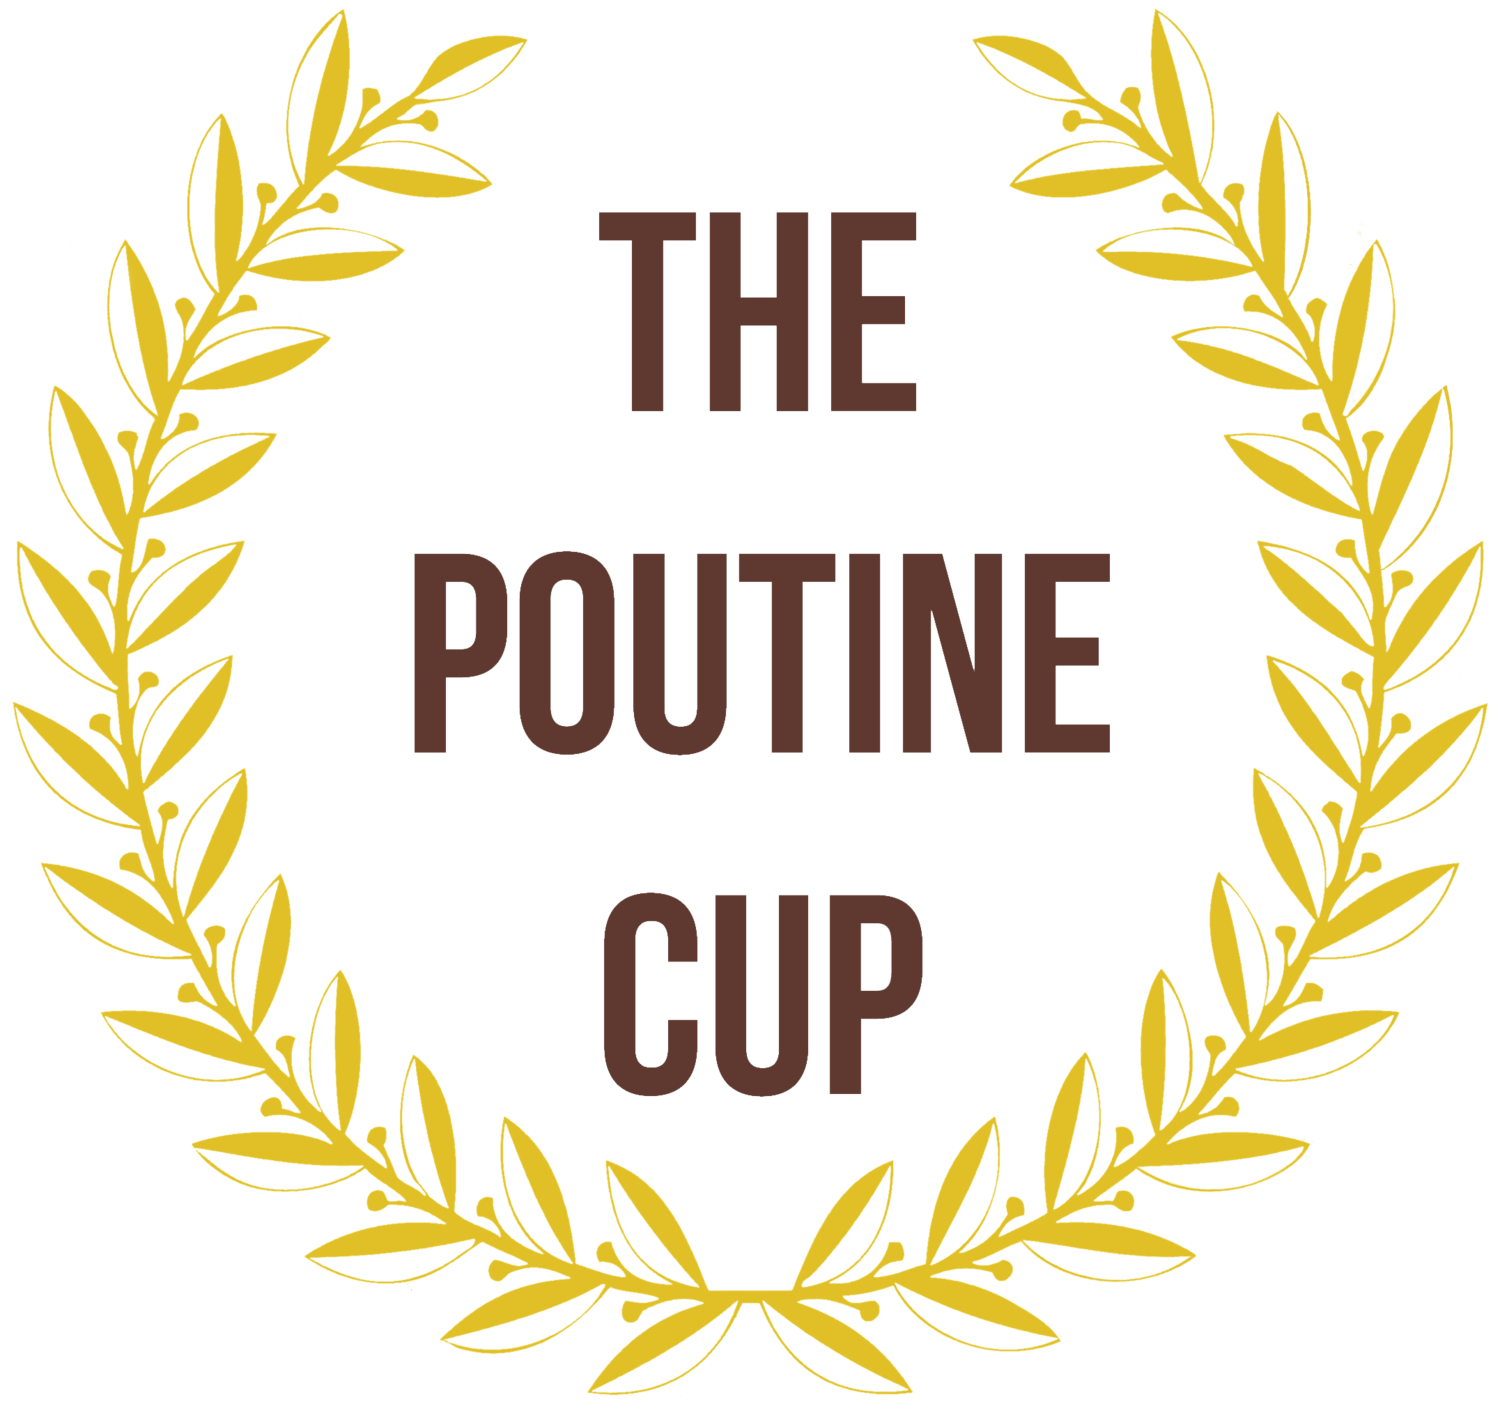 The Poutine Cup